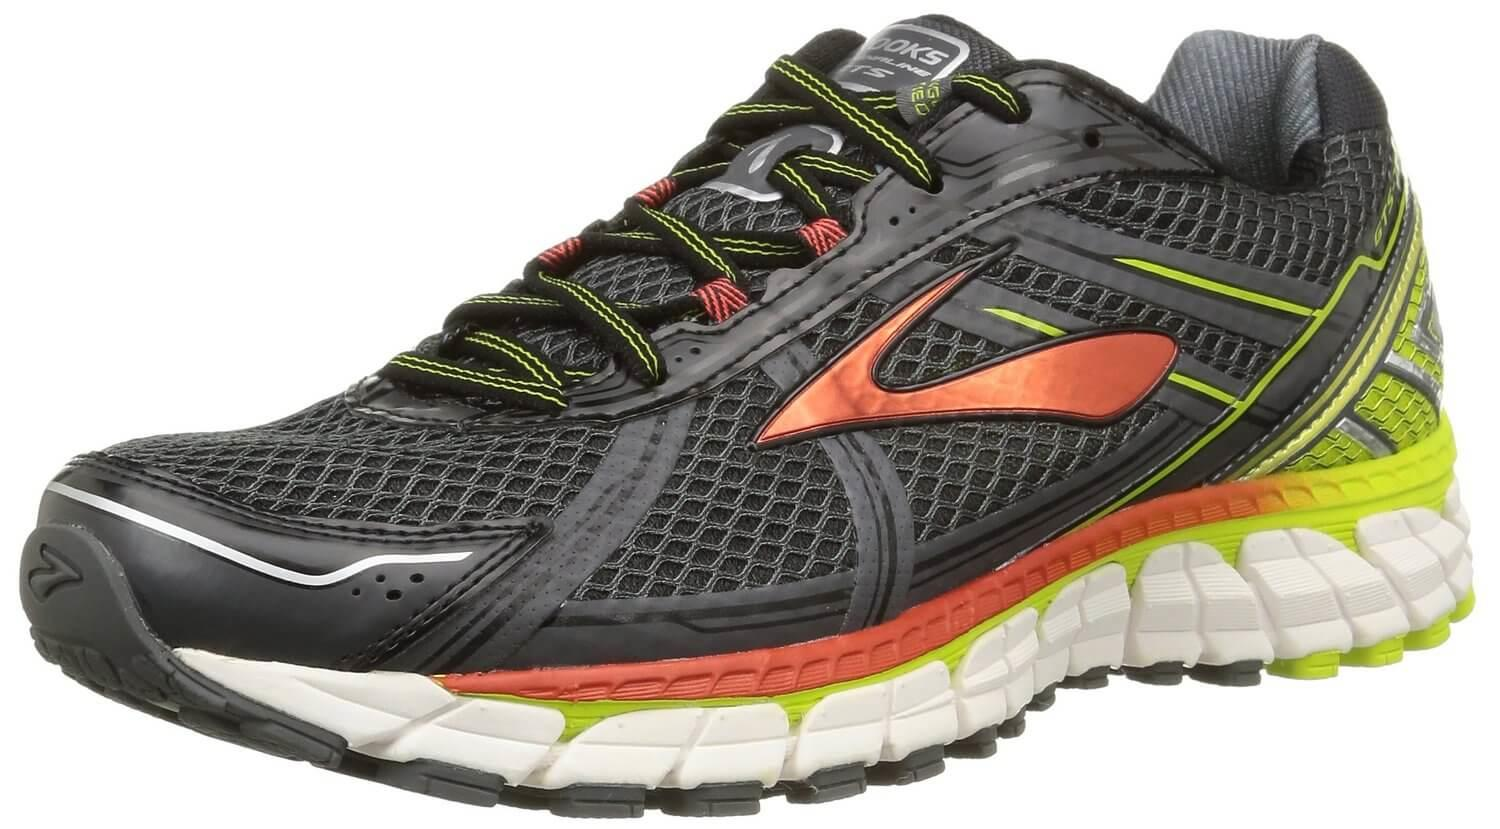 3b41547c028 Brooks Adrenaline GTS 15ed for Quality - in May 2019